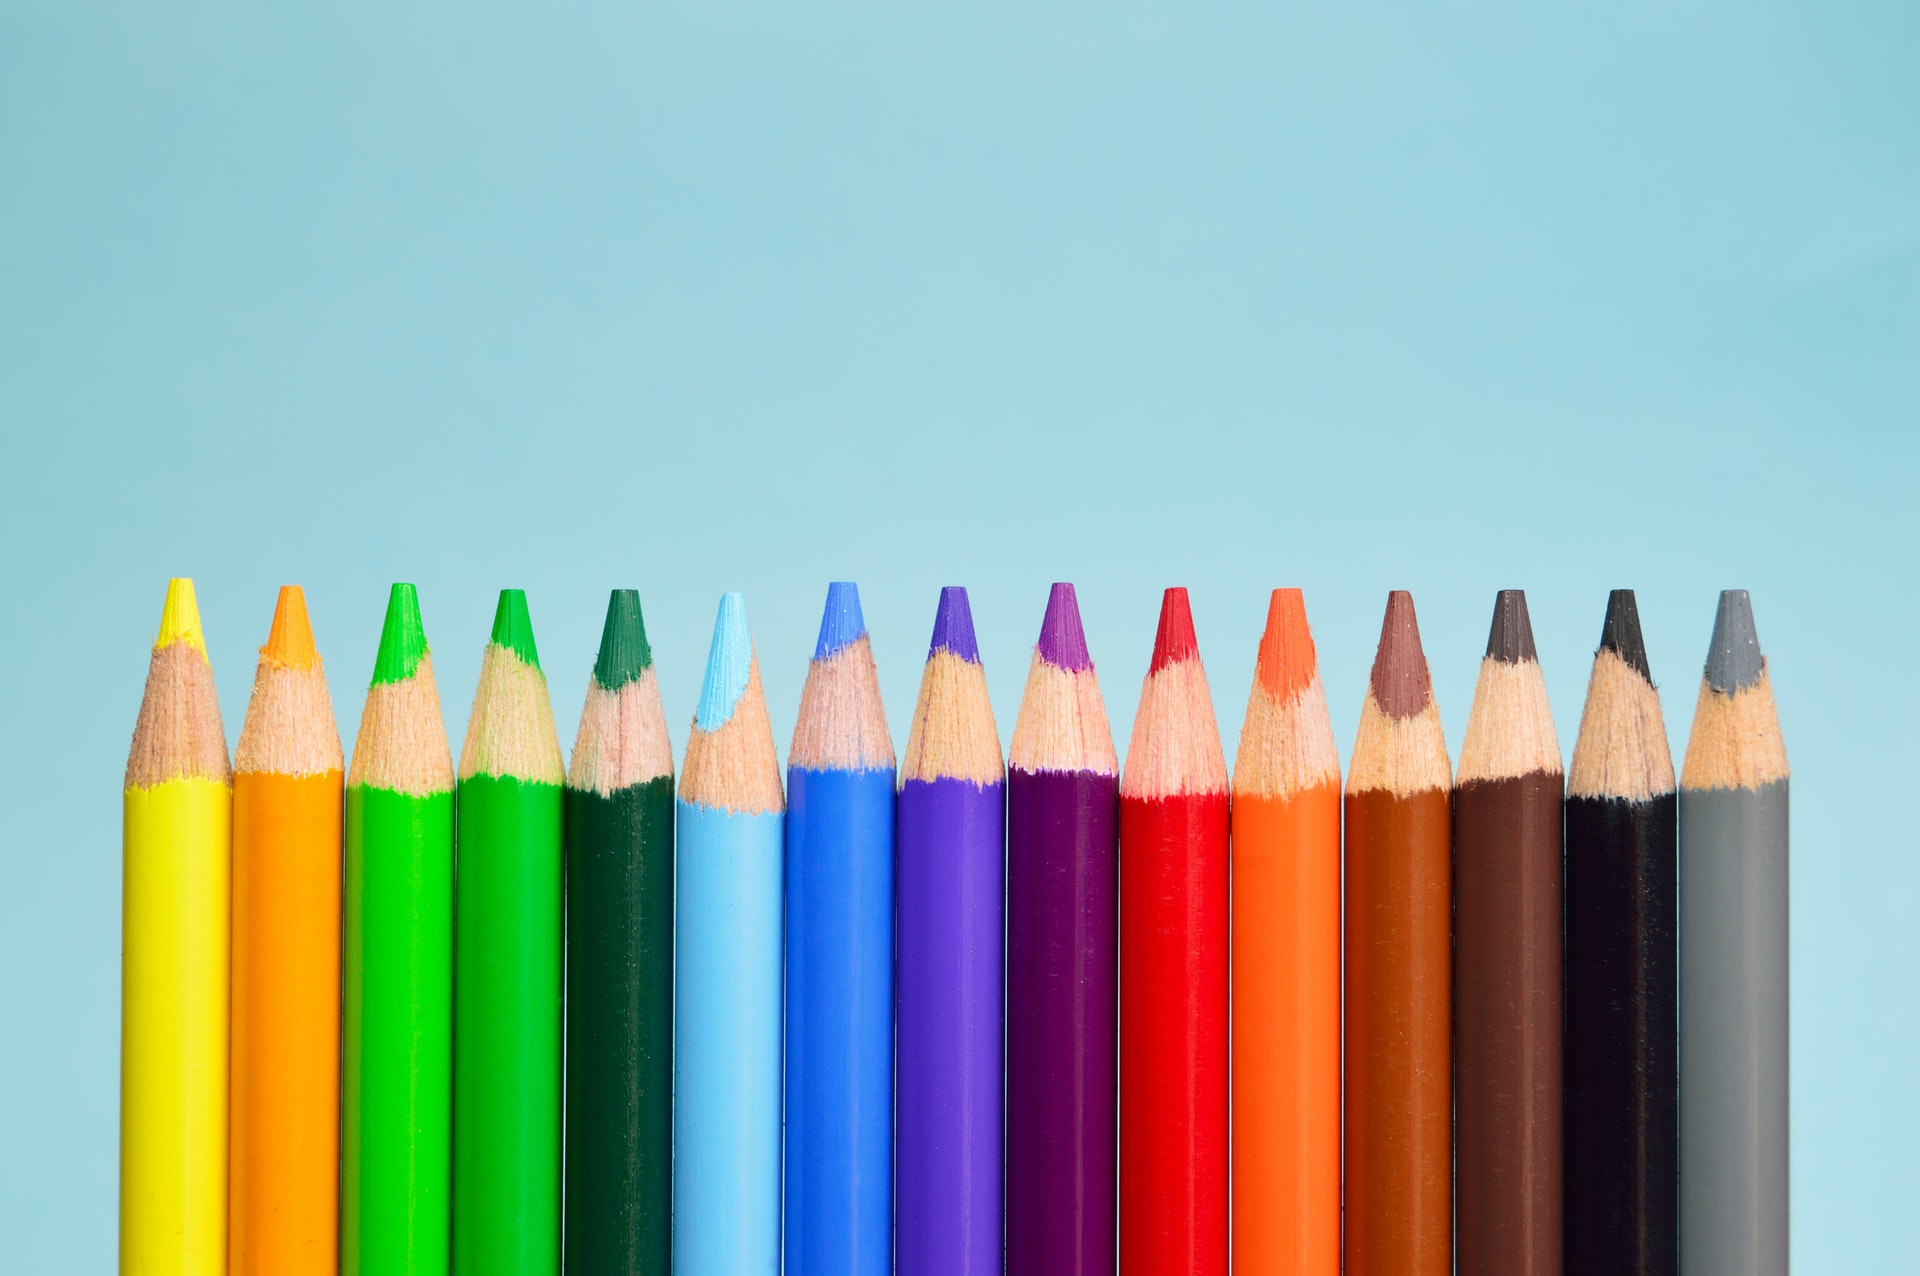 blog-image-pencil-crayons